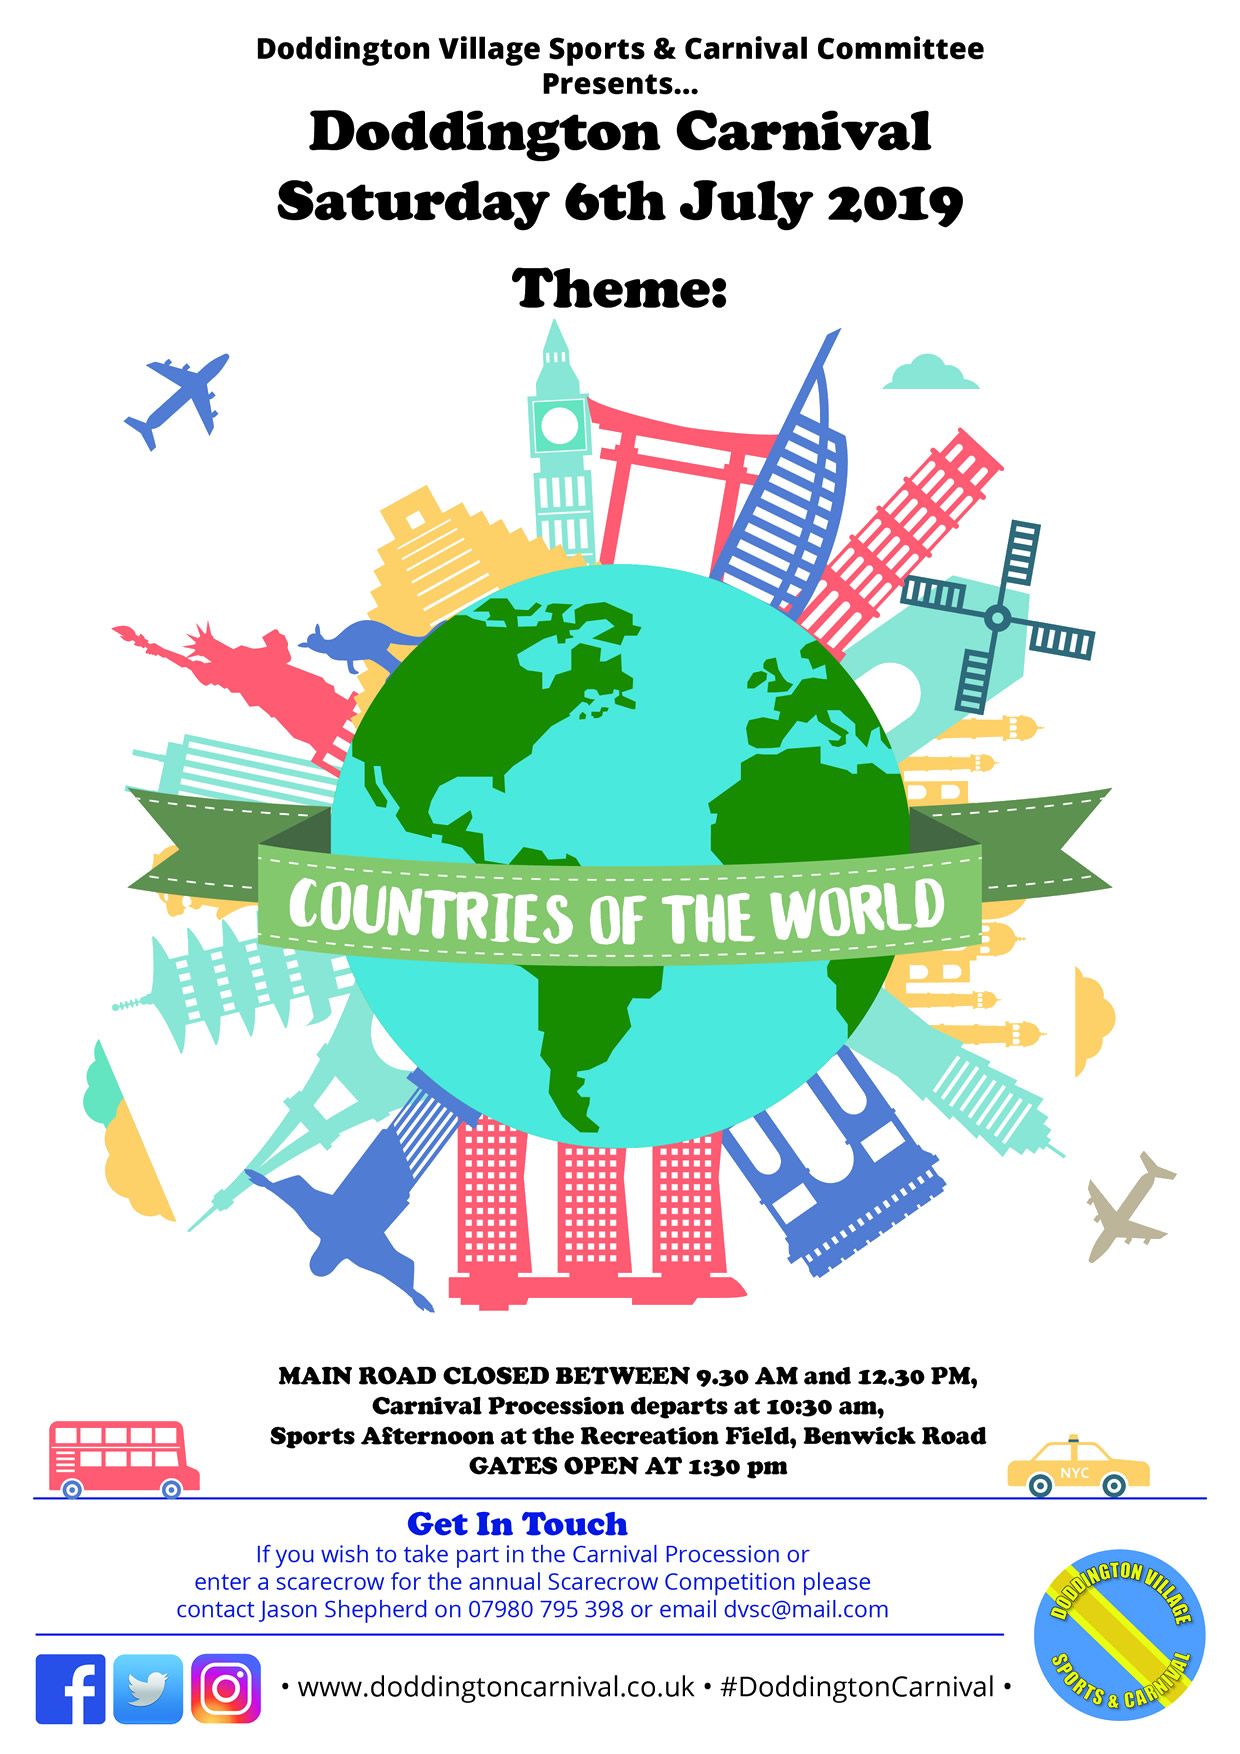 A portrait image showing that the theme for 2019 is 'Countries of the World', with lots of iconic images of buildings from around the world. such as Big Ben, the Eiffel Tower, the Statue of Liberty, all eminating from a picture of the globe, wrapped with a banner saying 'Countries of the World'.